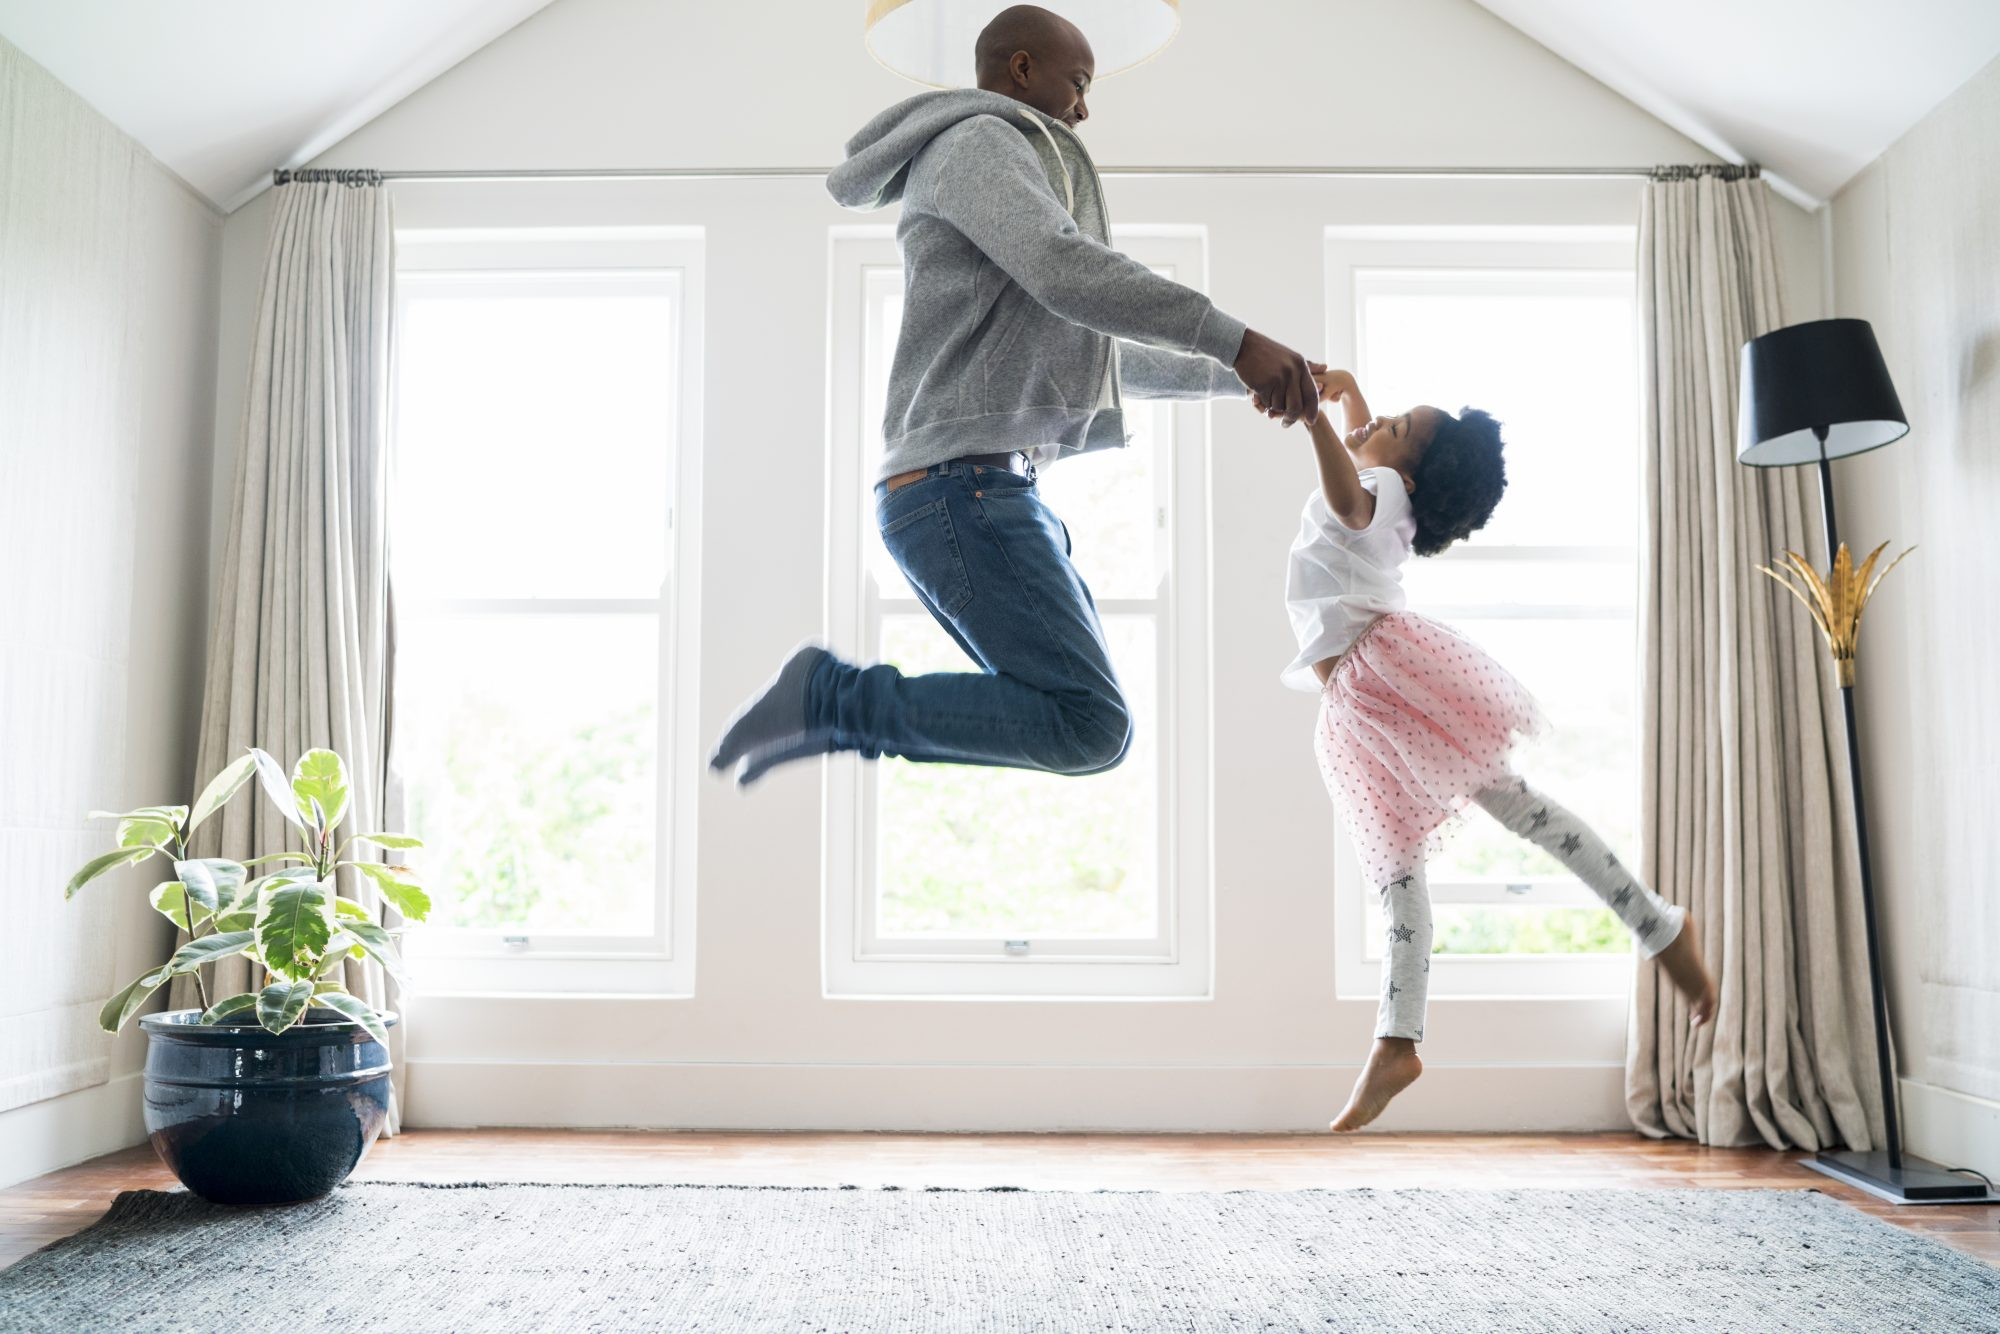 #2 Father and young daughter dance together in their home on a sunny day.